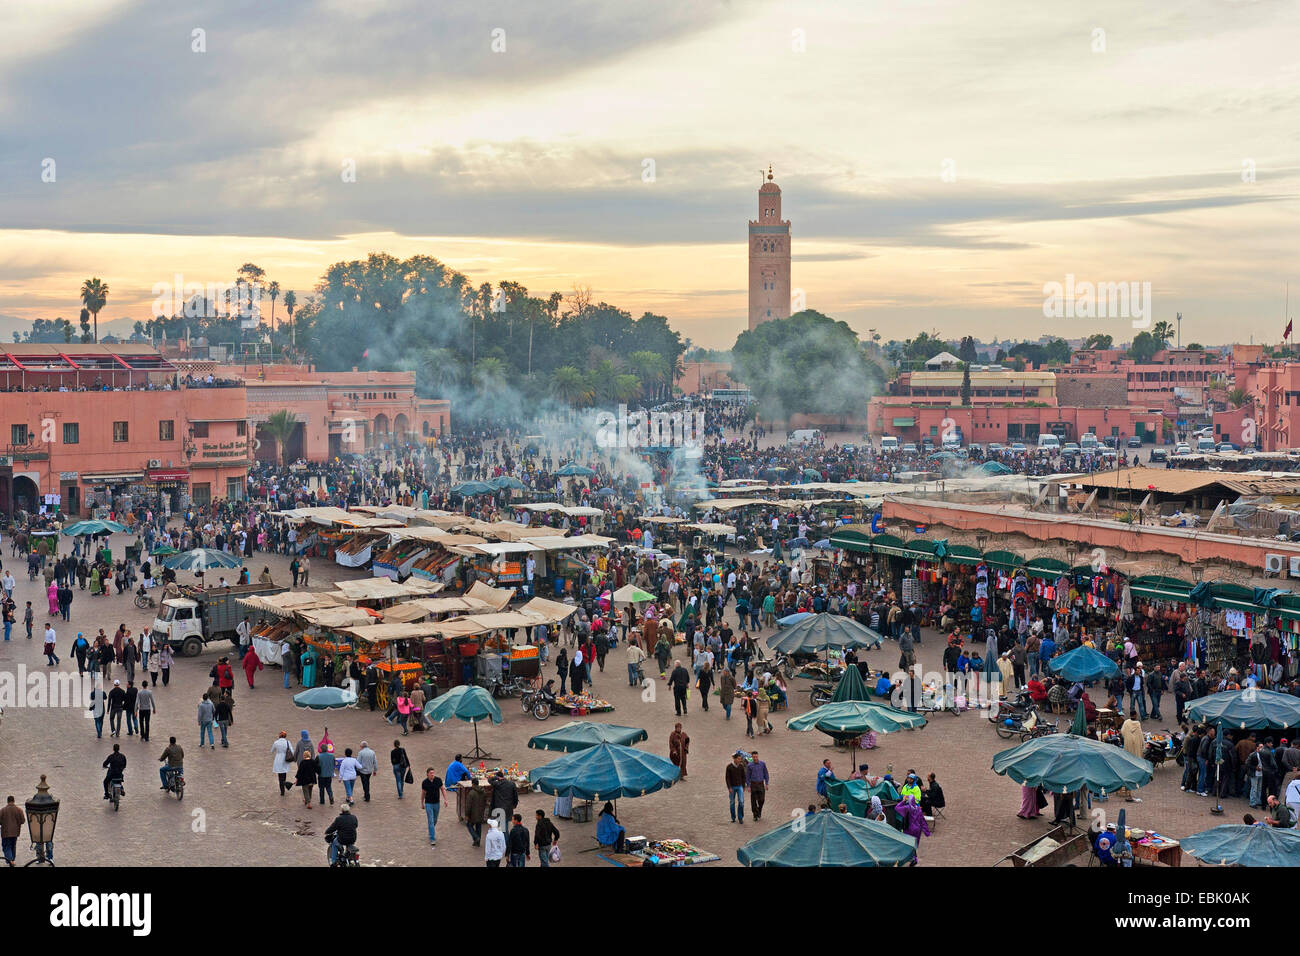 market place Djemaa el Fna in the evening, Morocco, Marrakesh Stock Photo